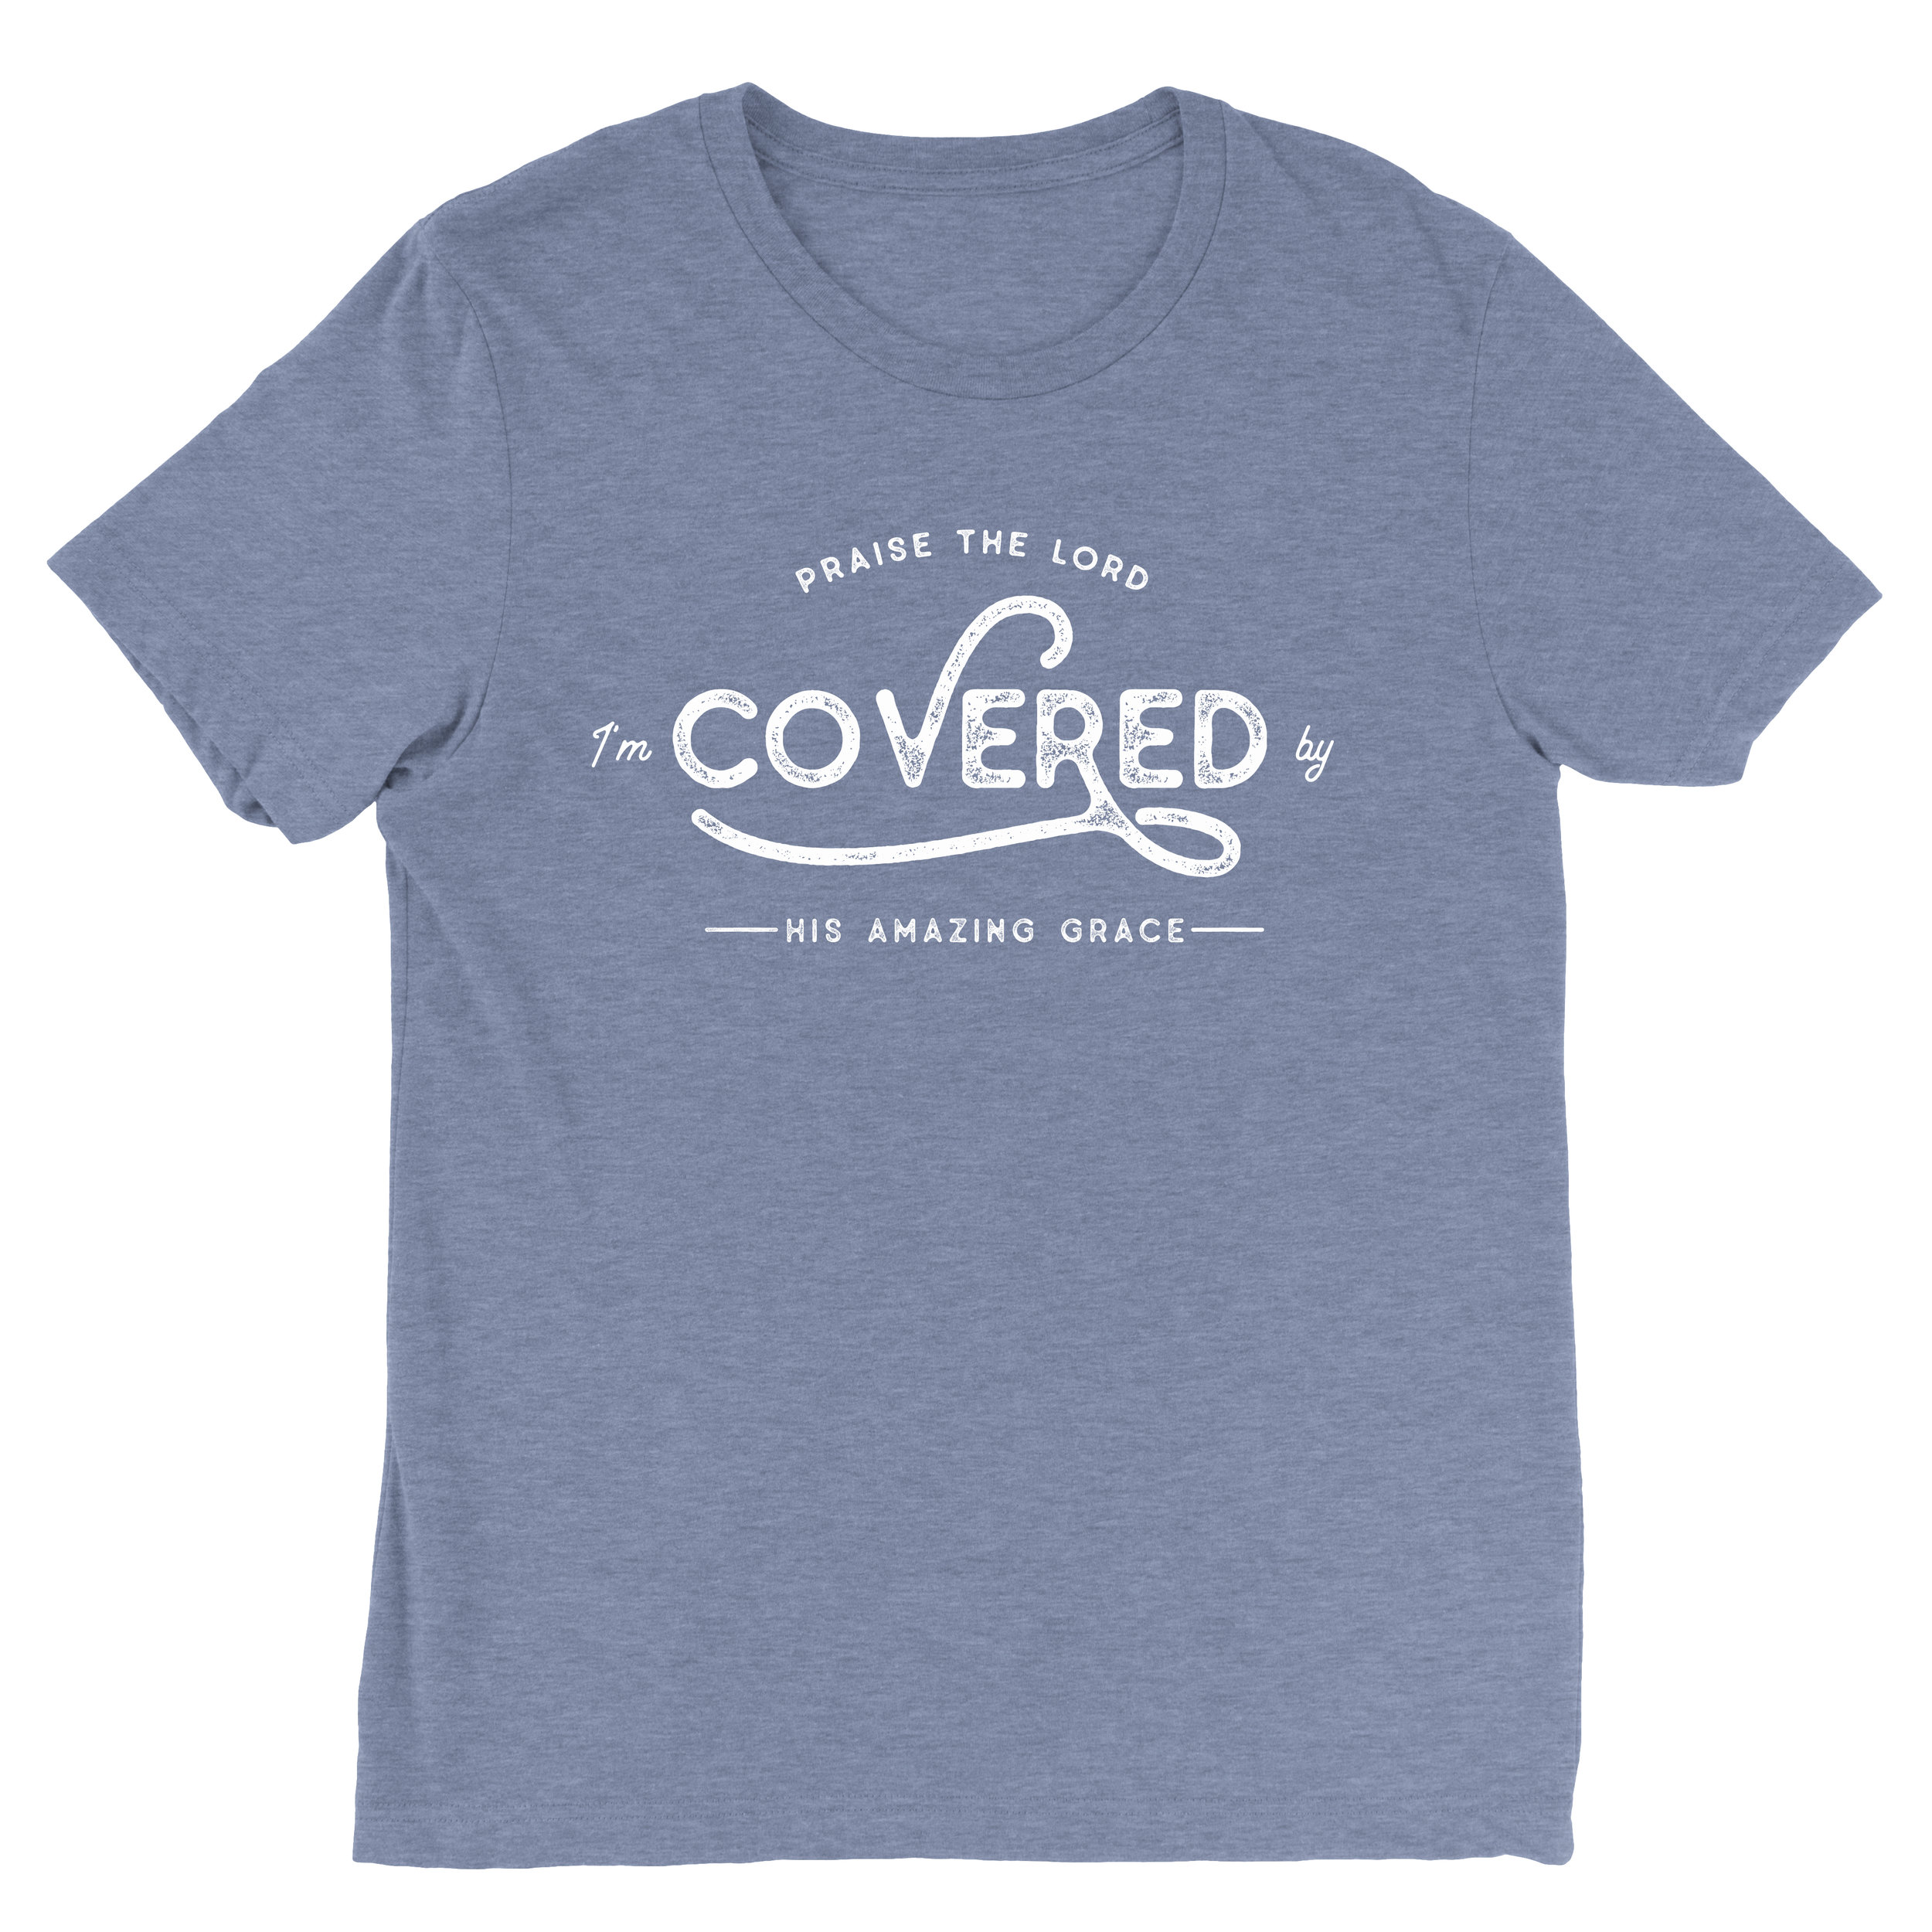 covered website tee.jpg